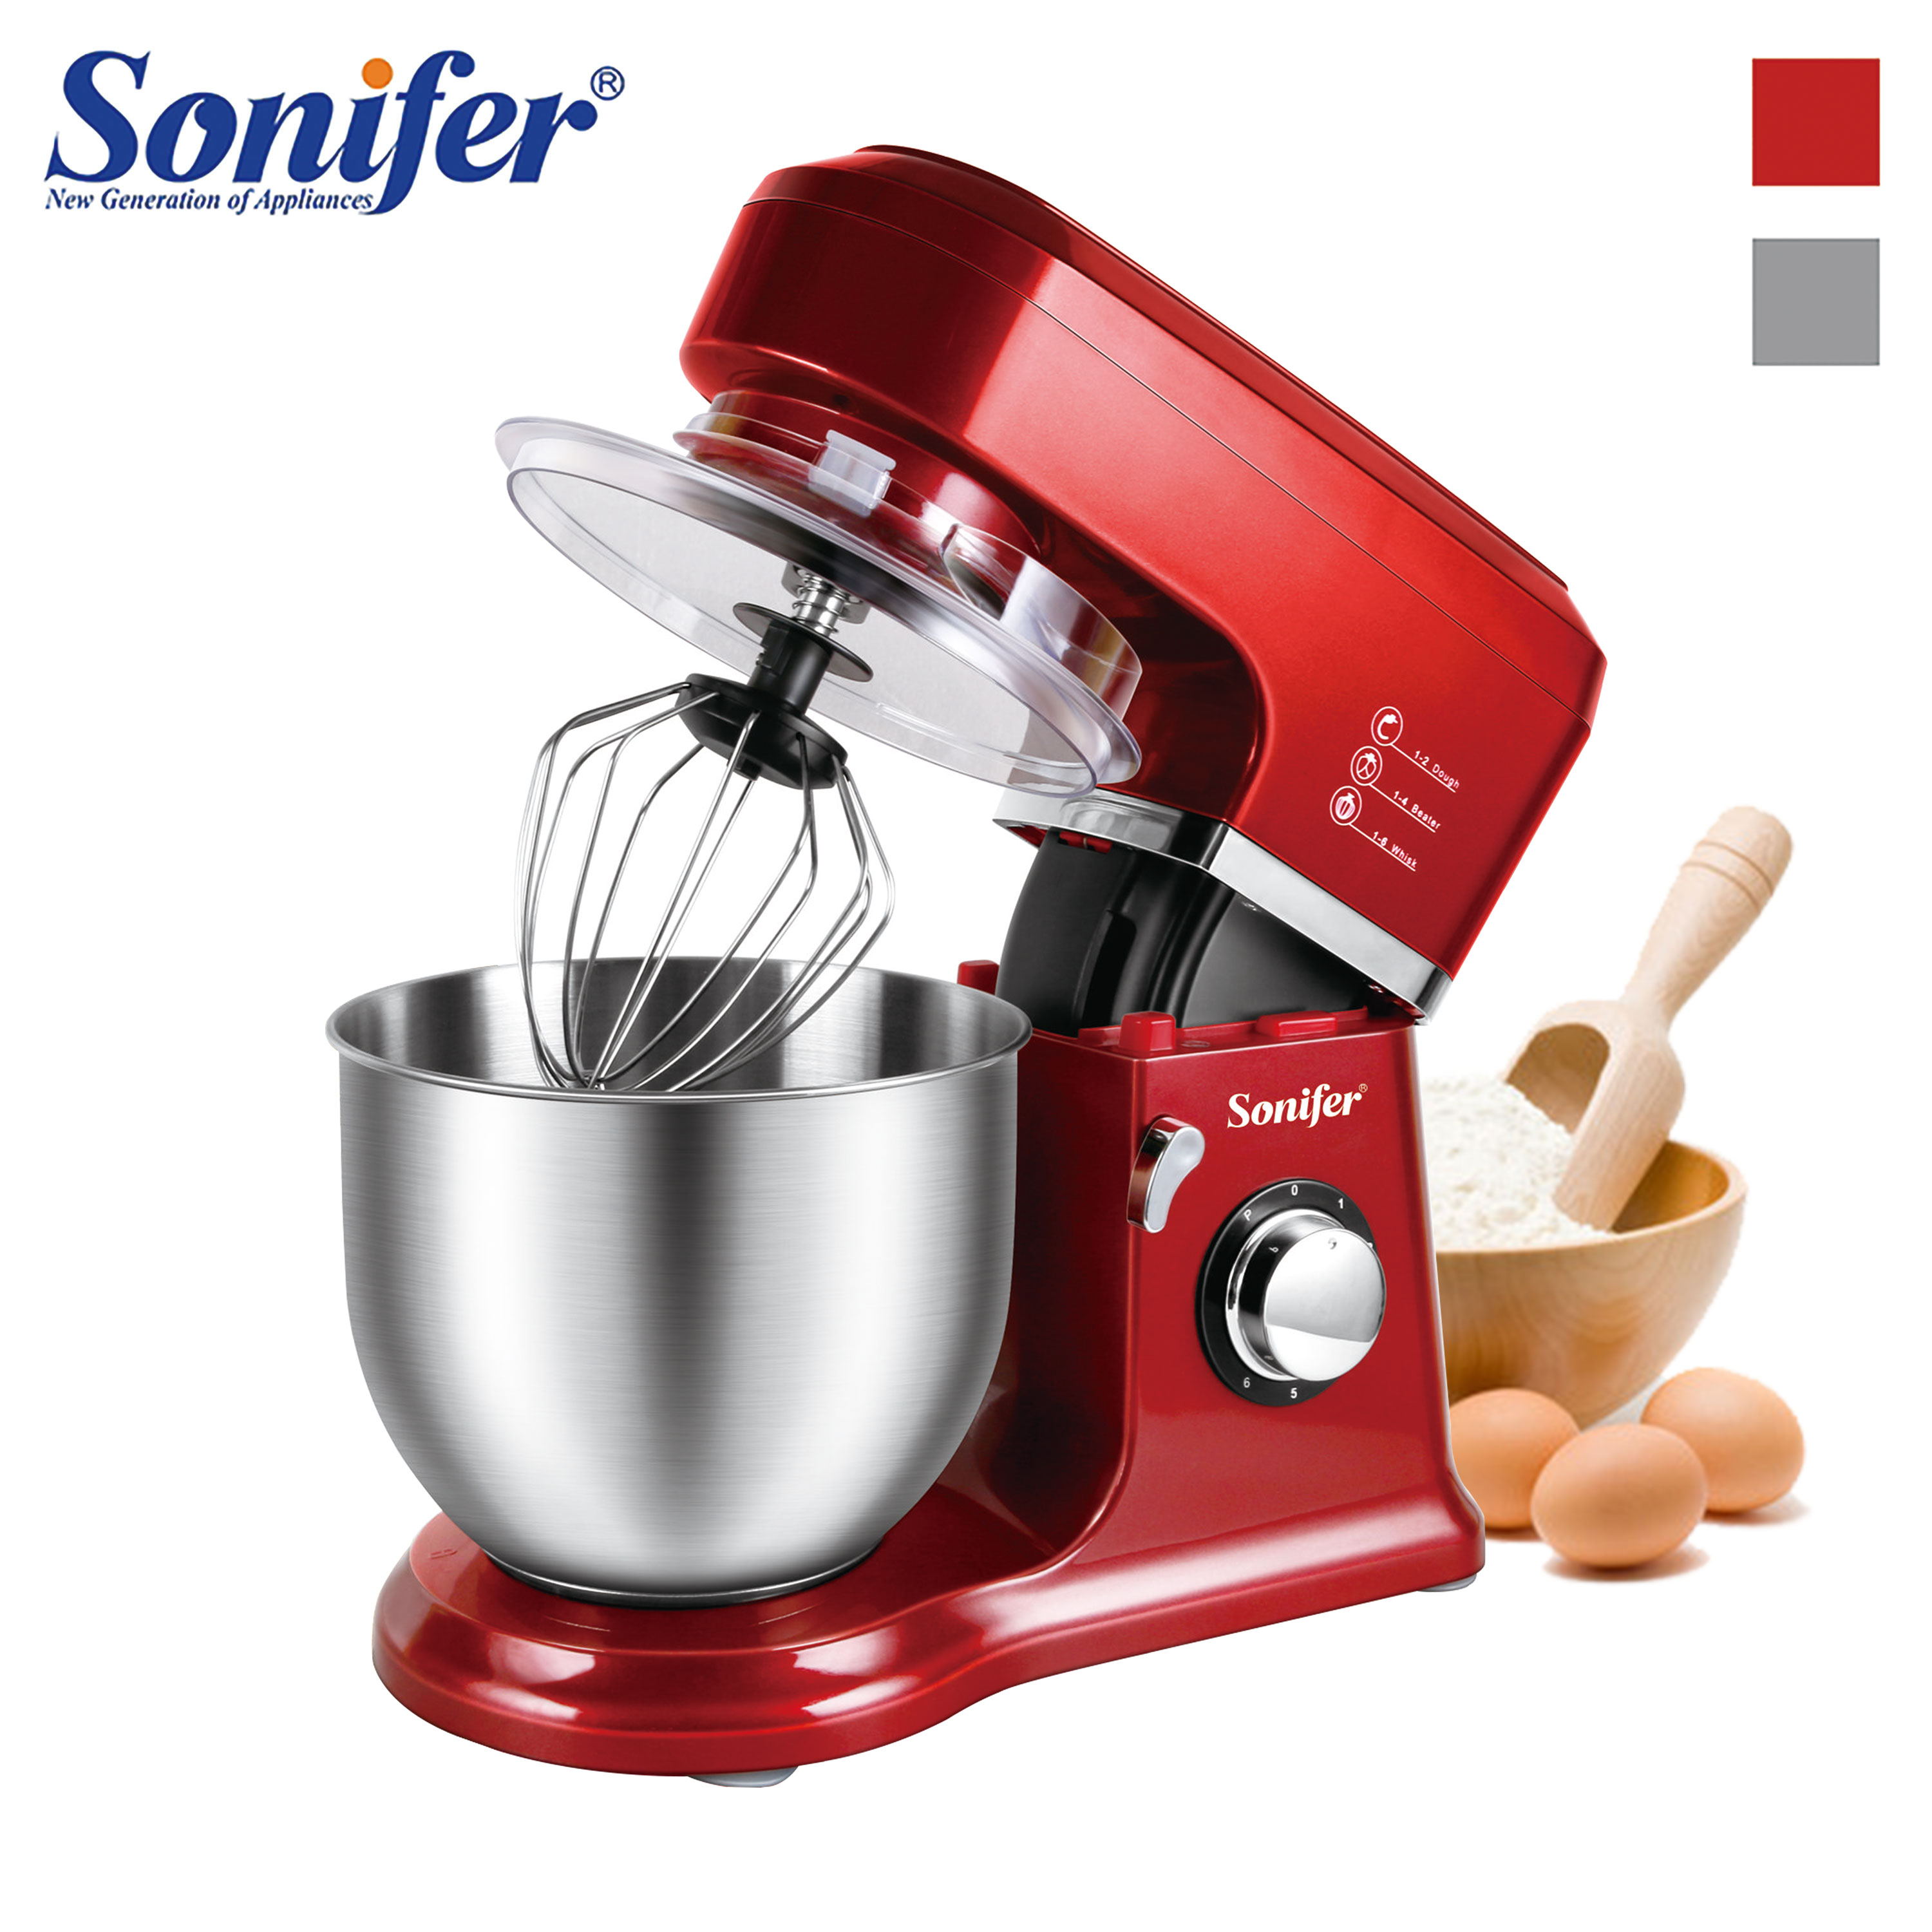 800W High Power Food Mixers Large size Stainless Steel Whisk Household Cream Mixer Kneading Machine Food Processor Sonifer